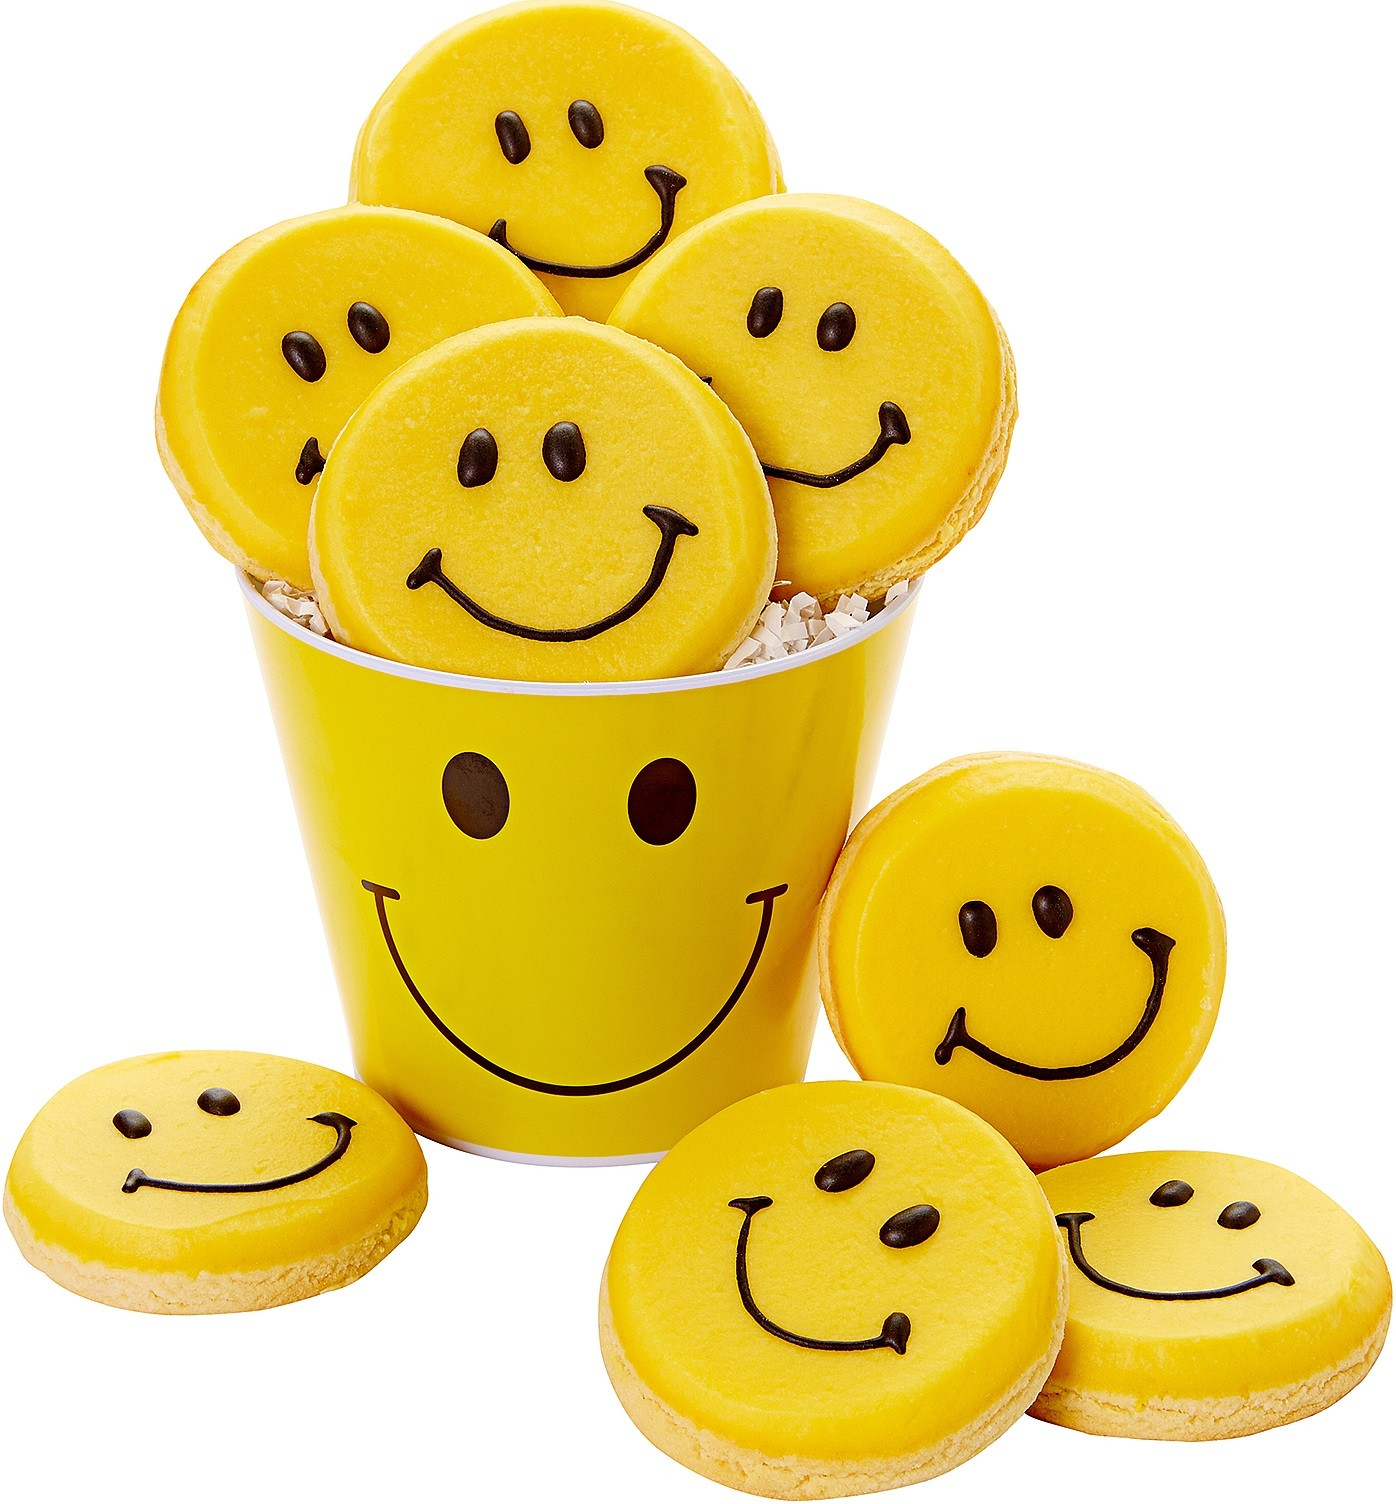 Free photo smiley face isolated joy laugh non commercial smiley face voltagebd Image collections